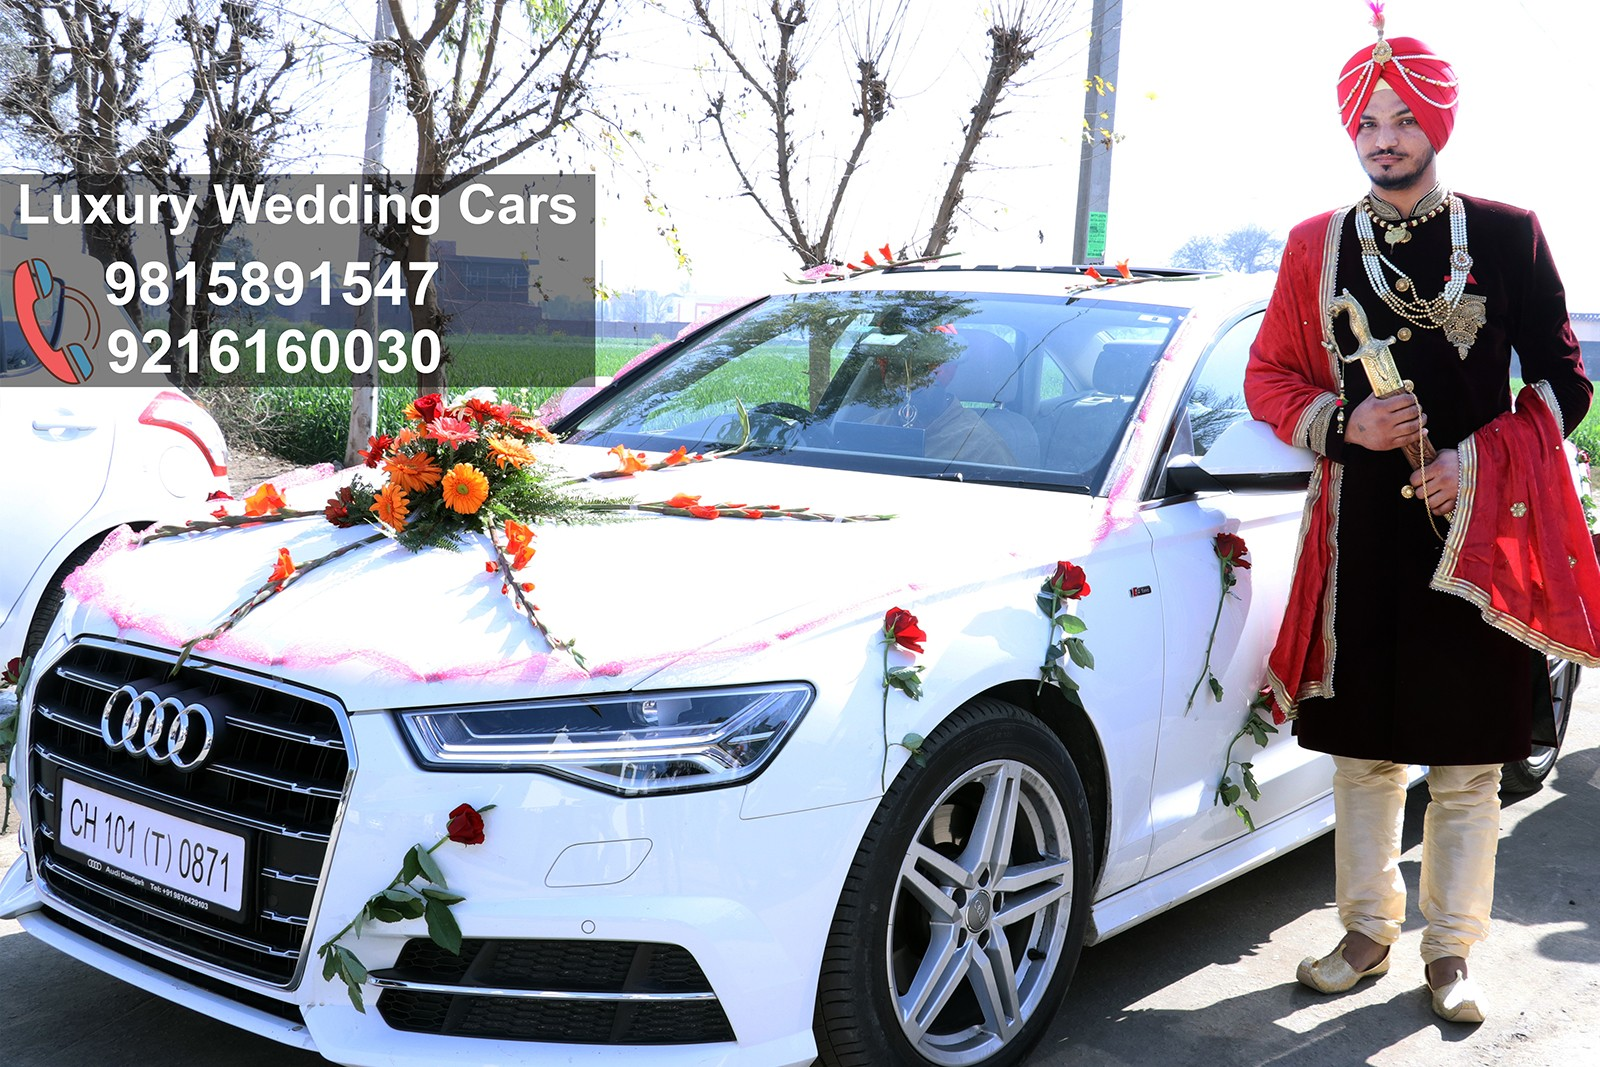 Ludhiana Luxury Wedding Cars | Wedding Luxury Cars Hire in Ludhiana Luxury Wedding Cars in Ludhiana, Wedding Luxury Cars Hire in Ludhiana